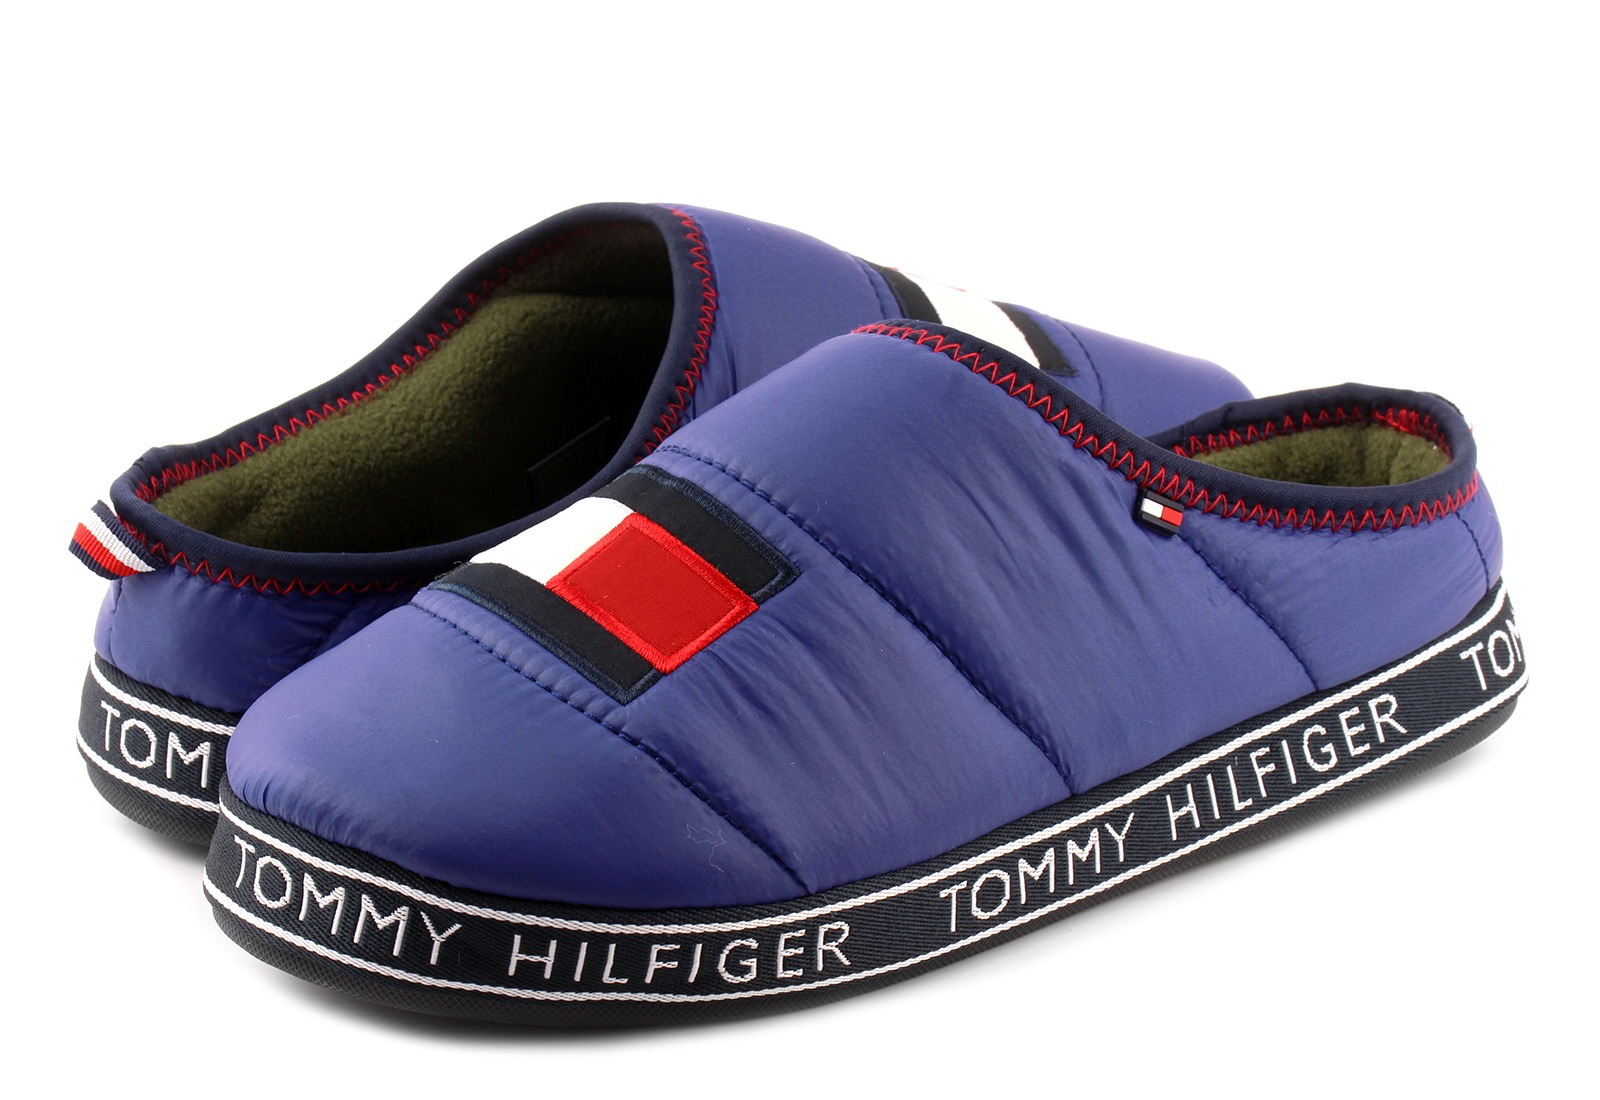 Tommy Hilfiger Papuče Plave Papuče I Natikače - Downslipper 3d - Office  Shoes - Online trgovina obuće 9924032bf0